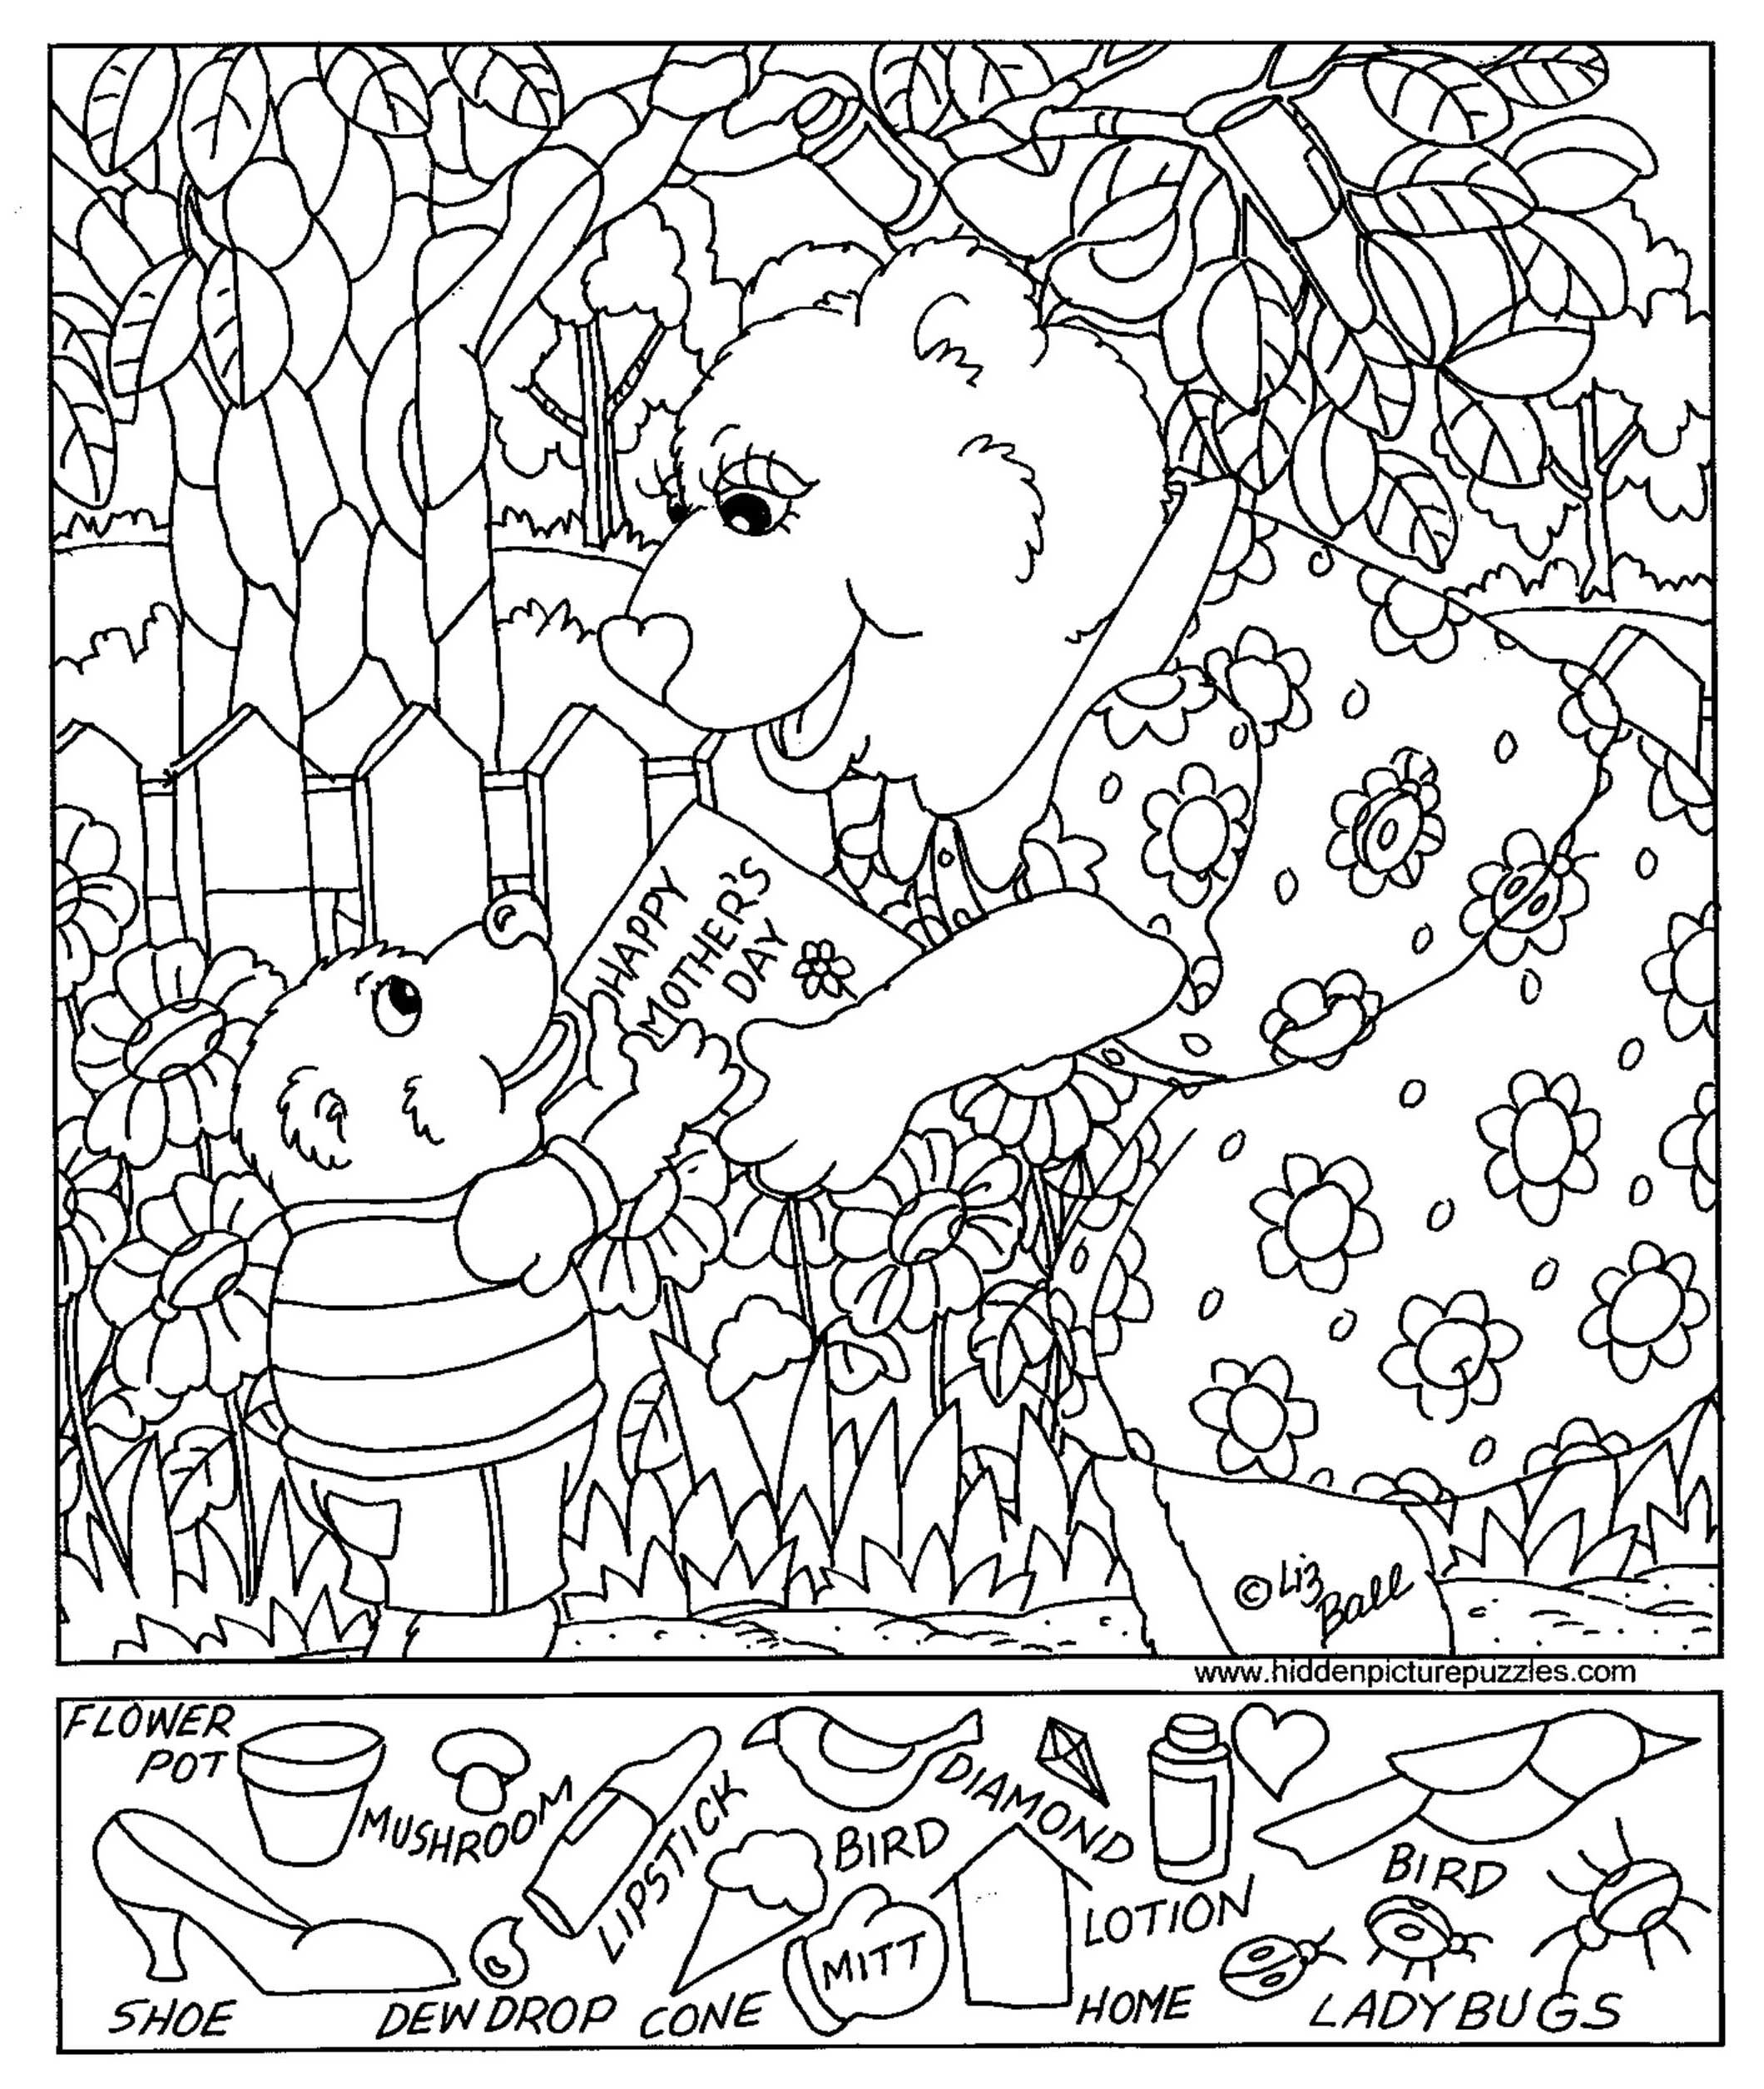 printable coloring pages middle school - photo#5